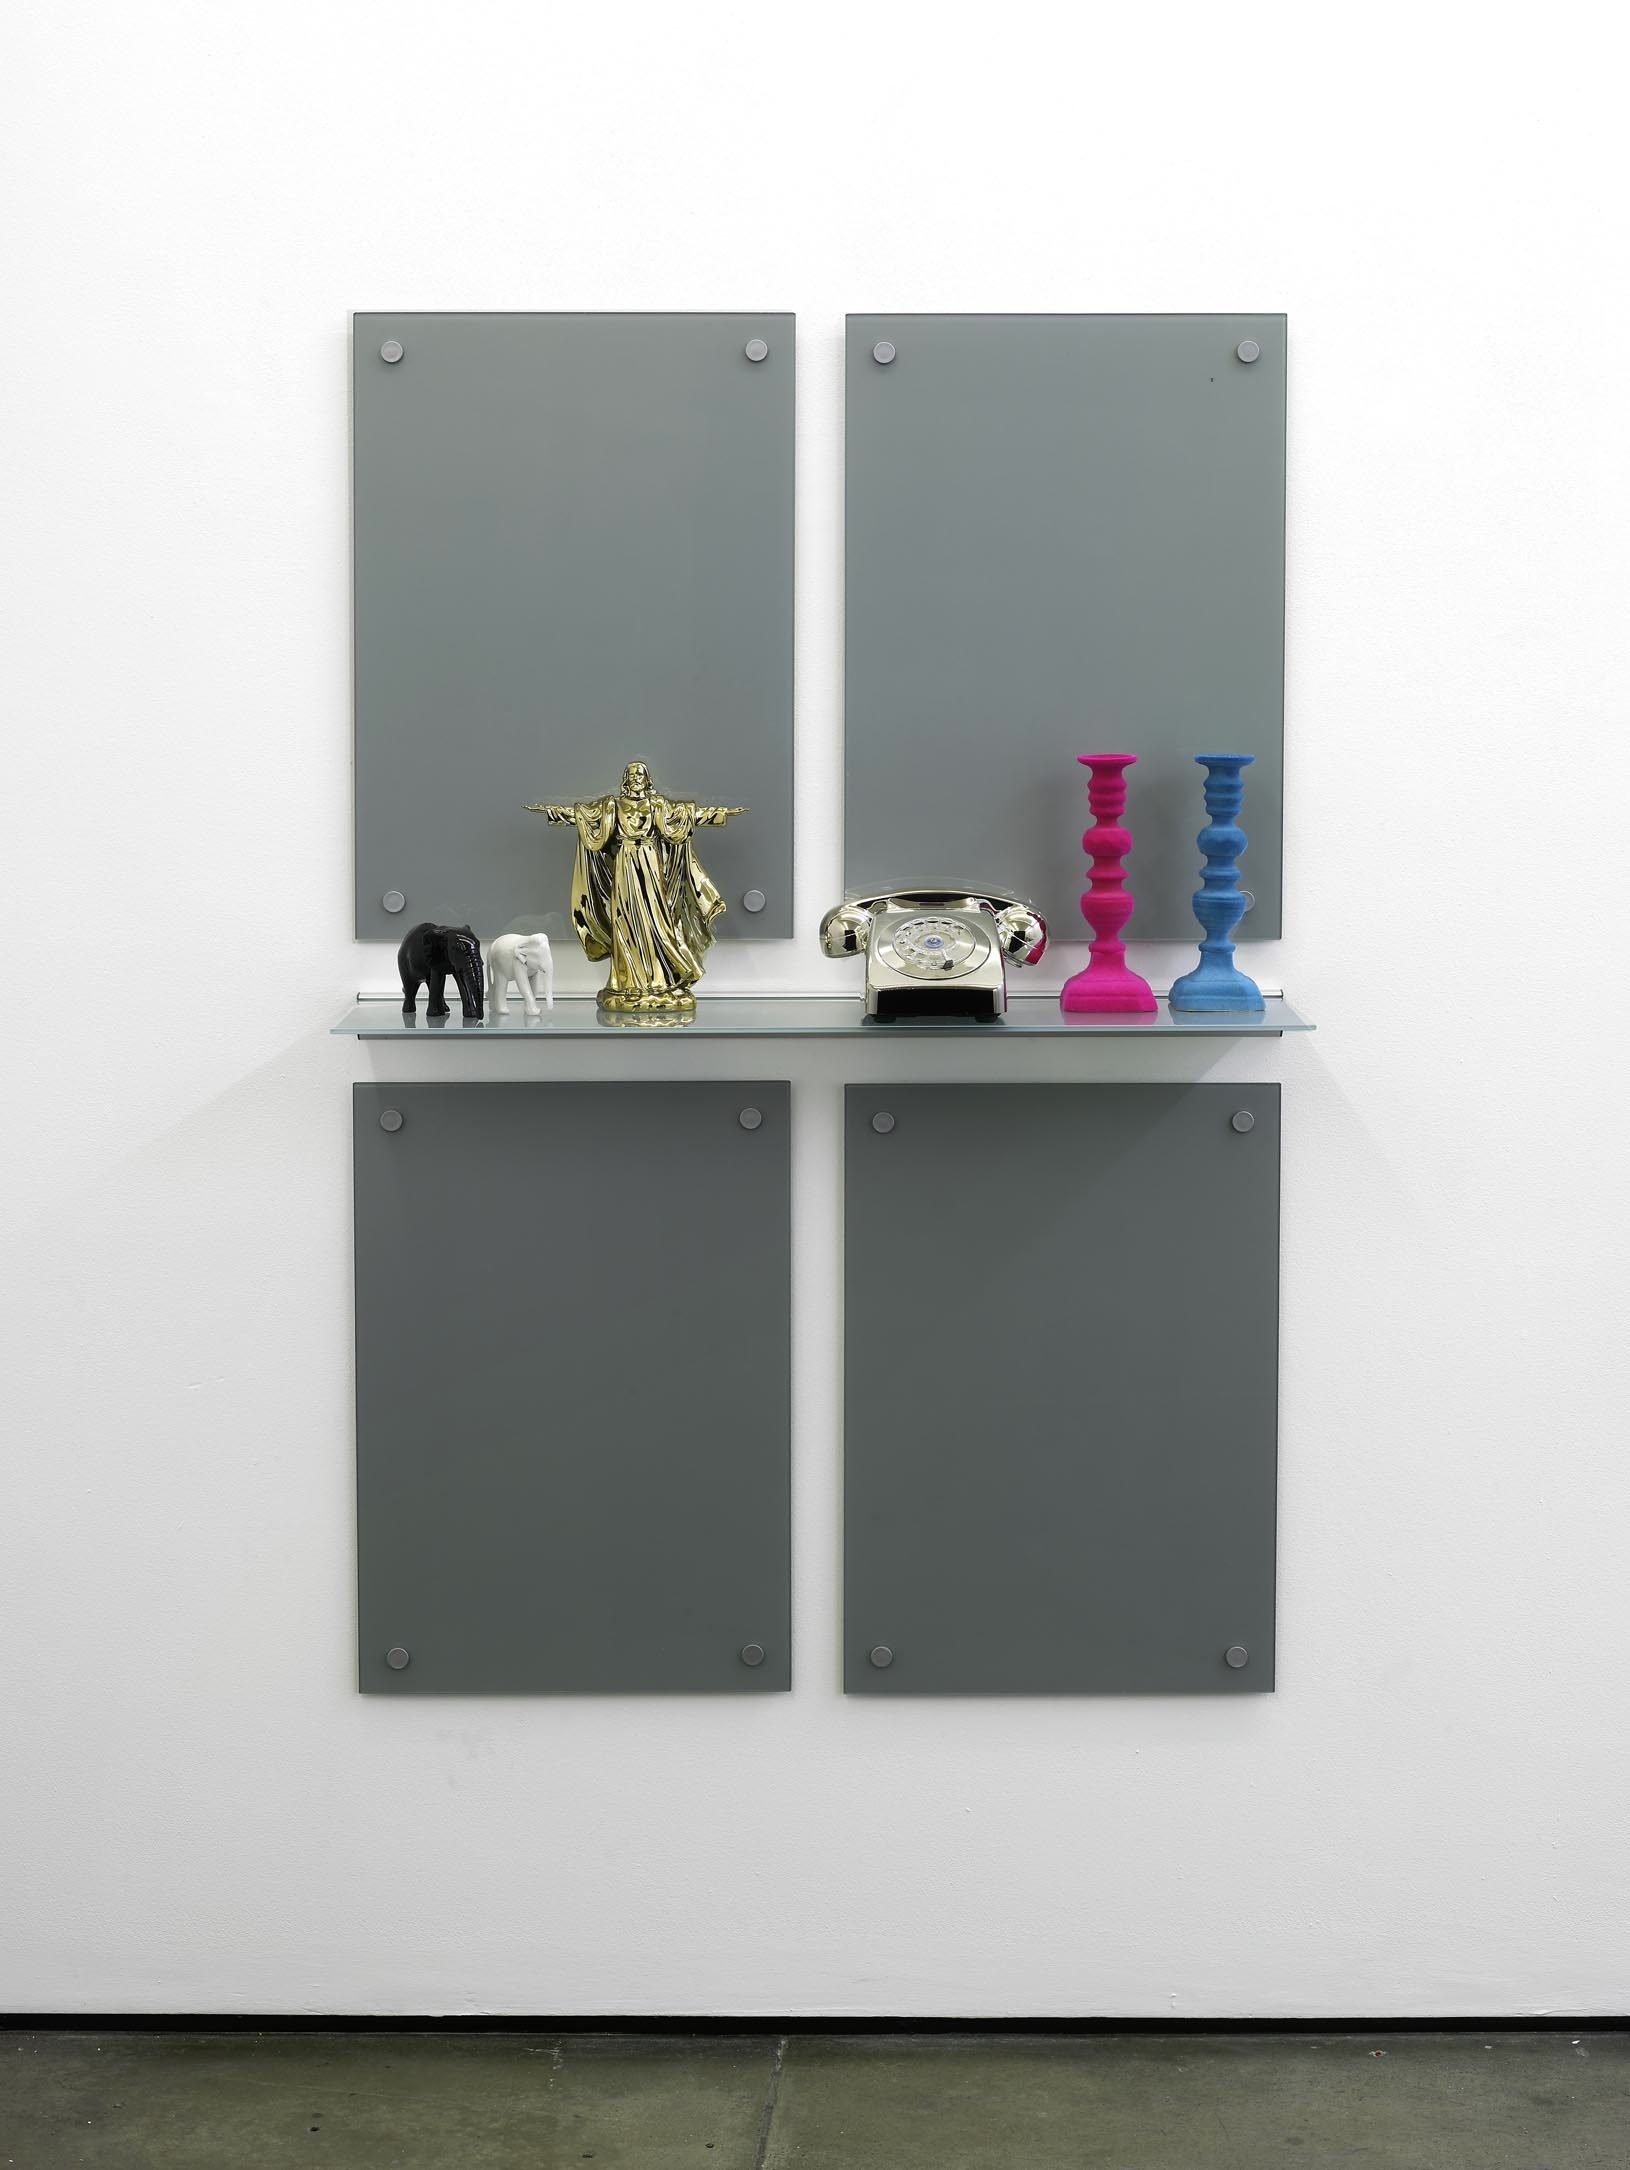 Matthew Darbyshire Untitled Homeware No. 9,2011 Painted black and white carved elephant ornaments, chromed gold porcelain Jesus figurine, chromed silver retro telephone, flocked fuchsia brass candlestick, flocked turquoise brass candlestick, glass and steel supports:135 x 95 x 26.5 cm